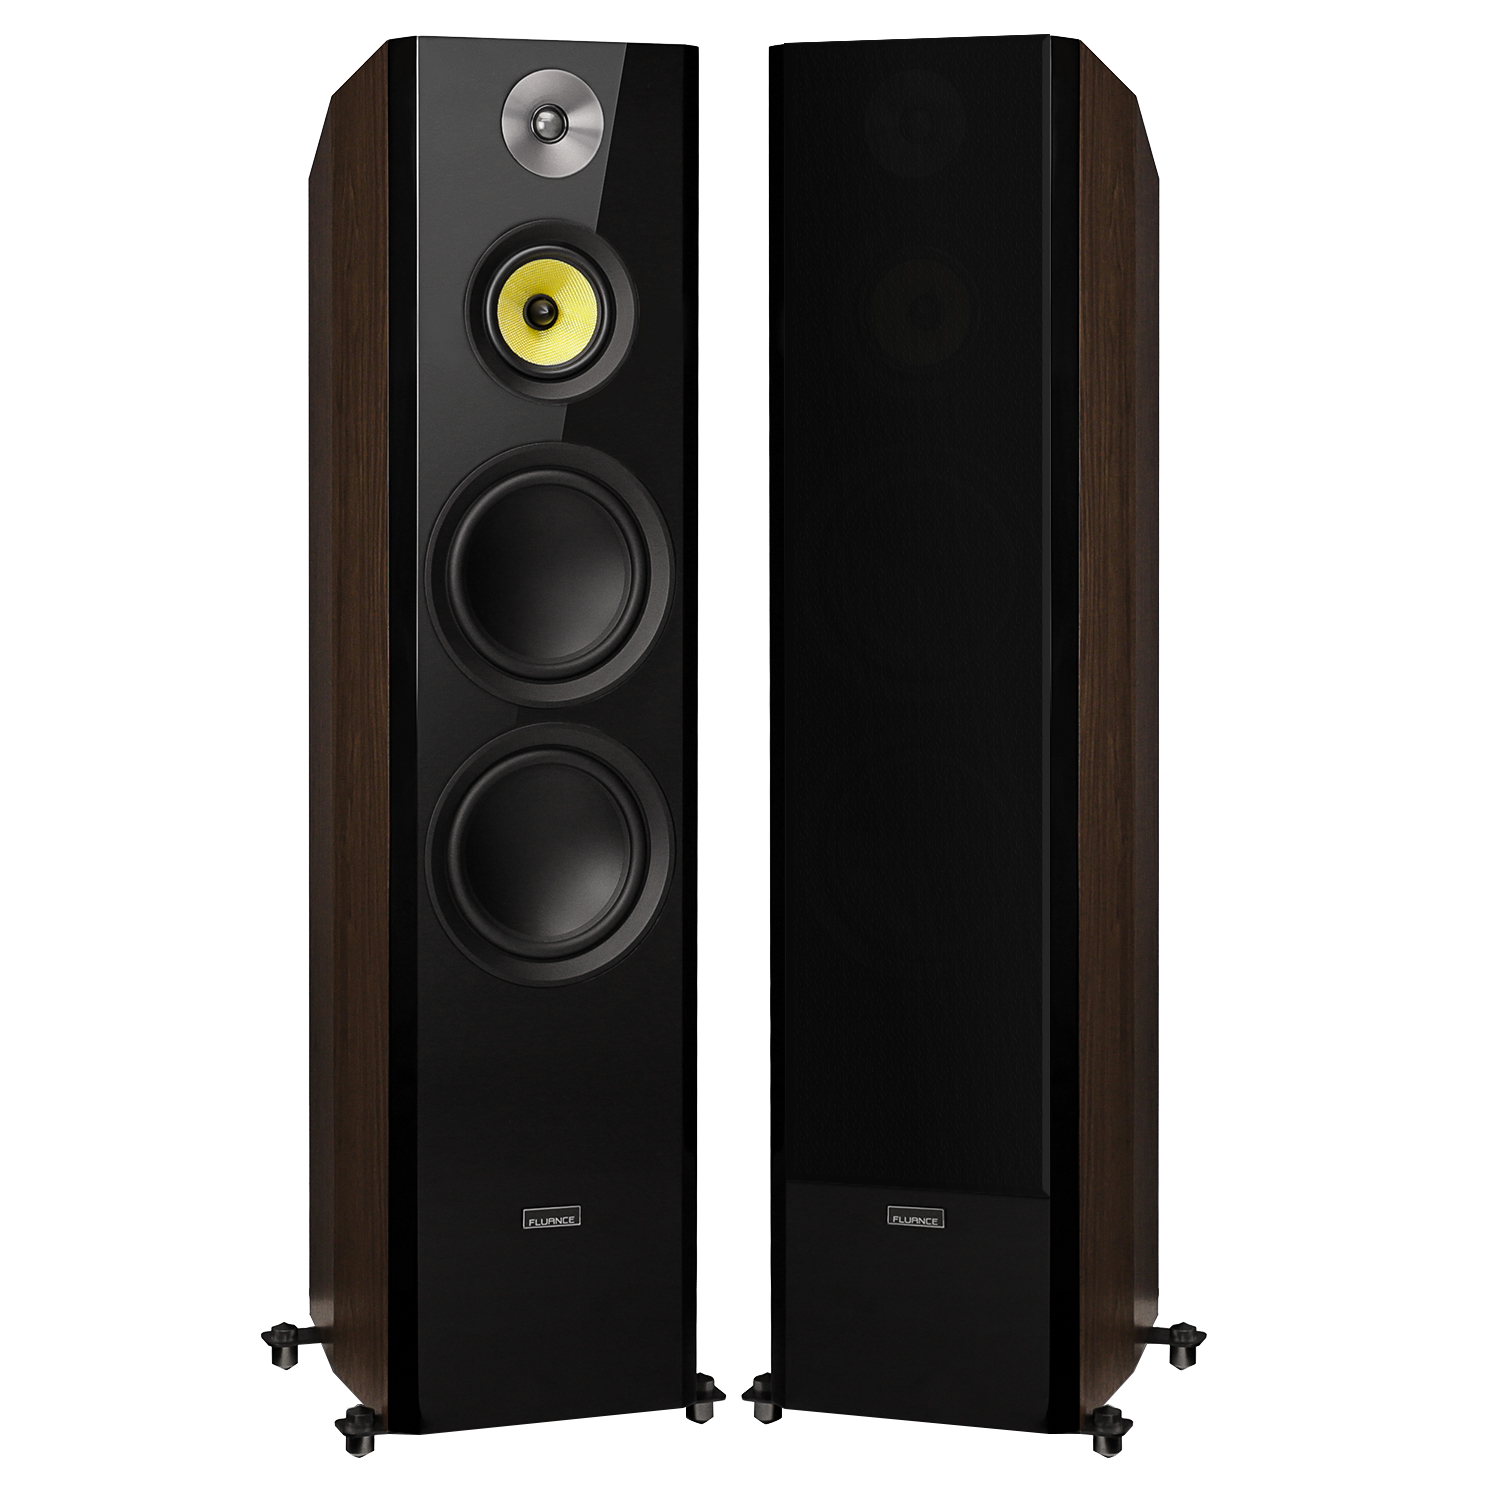 Fluance HFFW Dark Walnut Signature Series Florostanding Speakers